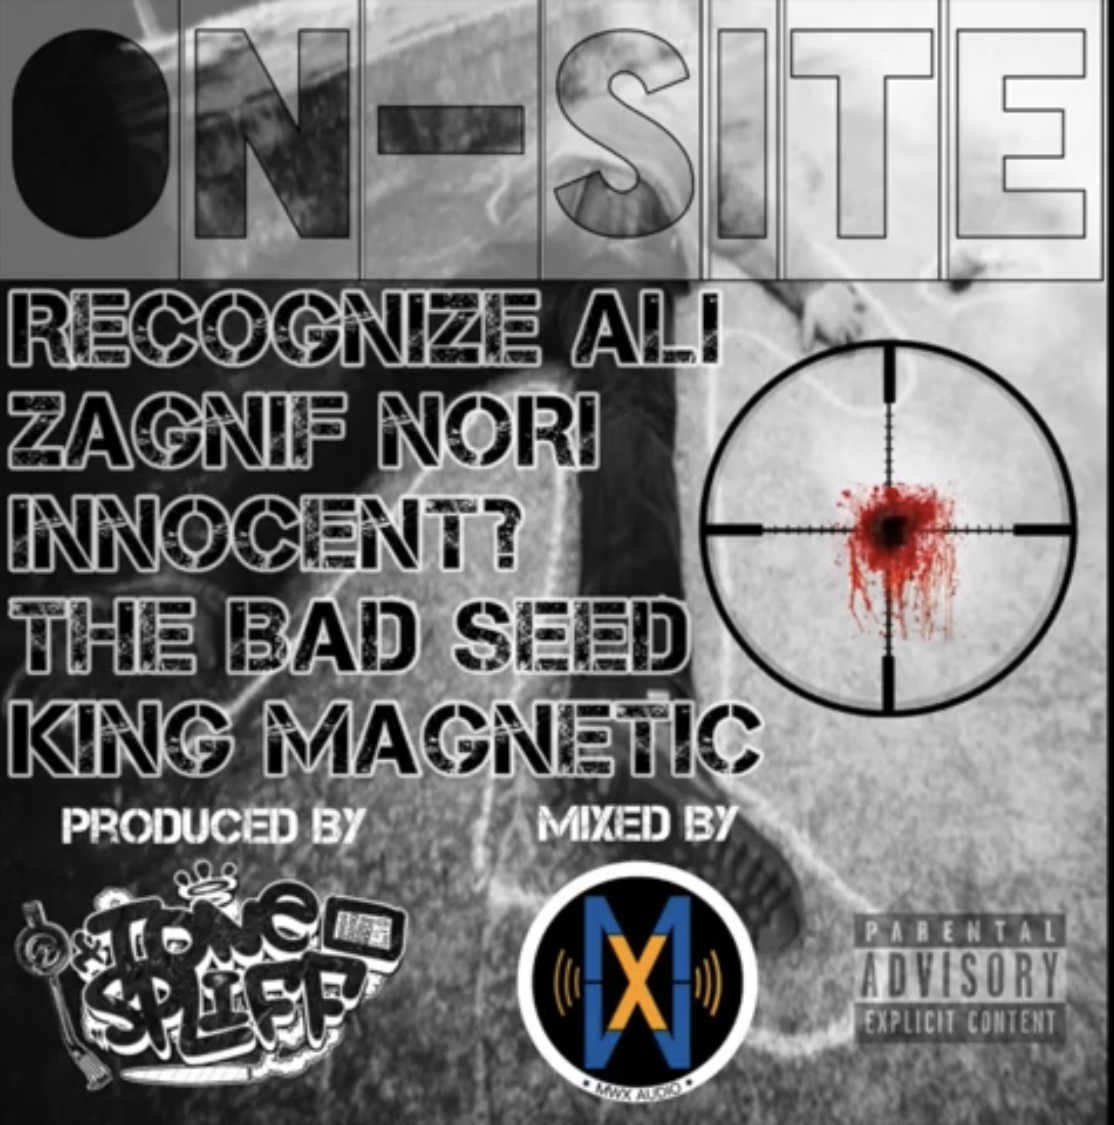 Tone Spliff - On Site feat. Recognize Ali, Zagnif Nori, Innocent?, The Bad Seed and King Magnetic